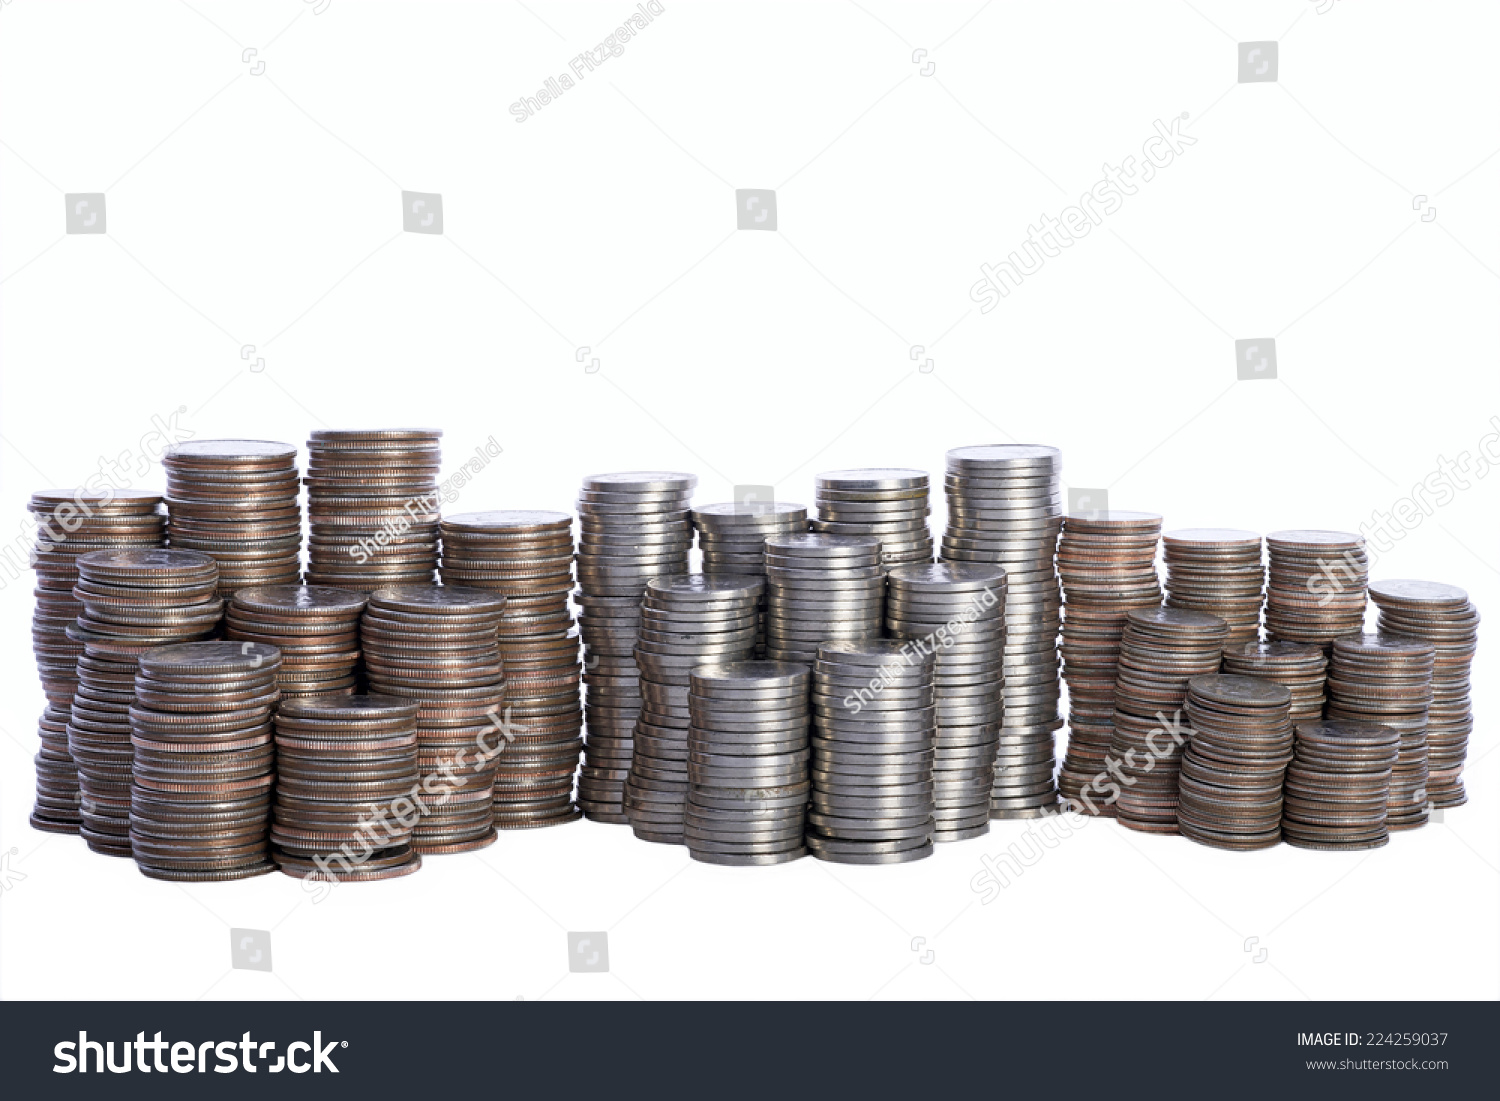 Money Stacks Of Coins Quarters Nickels And Dimes